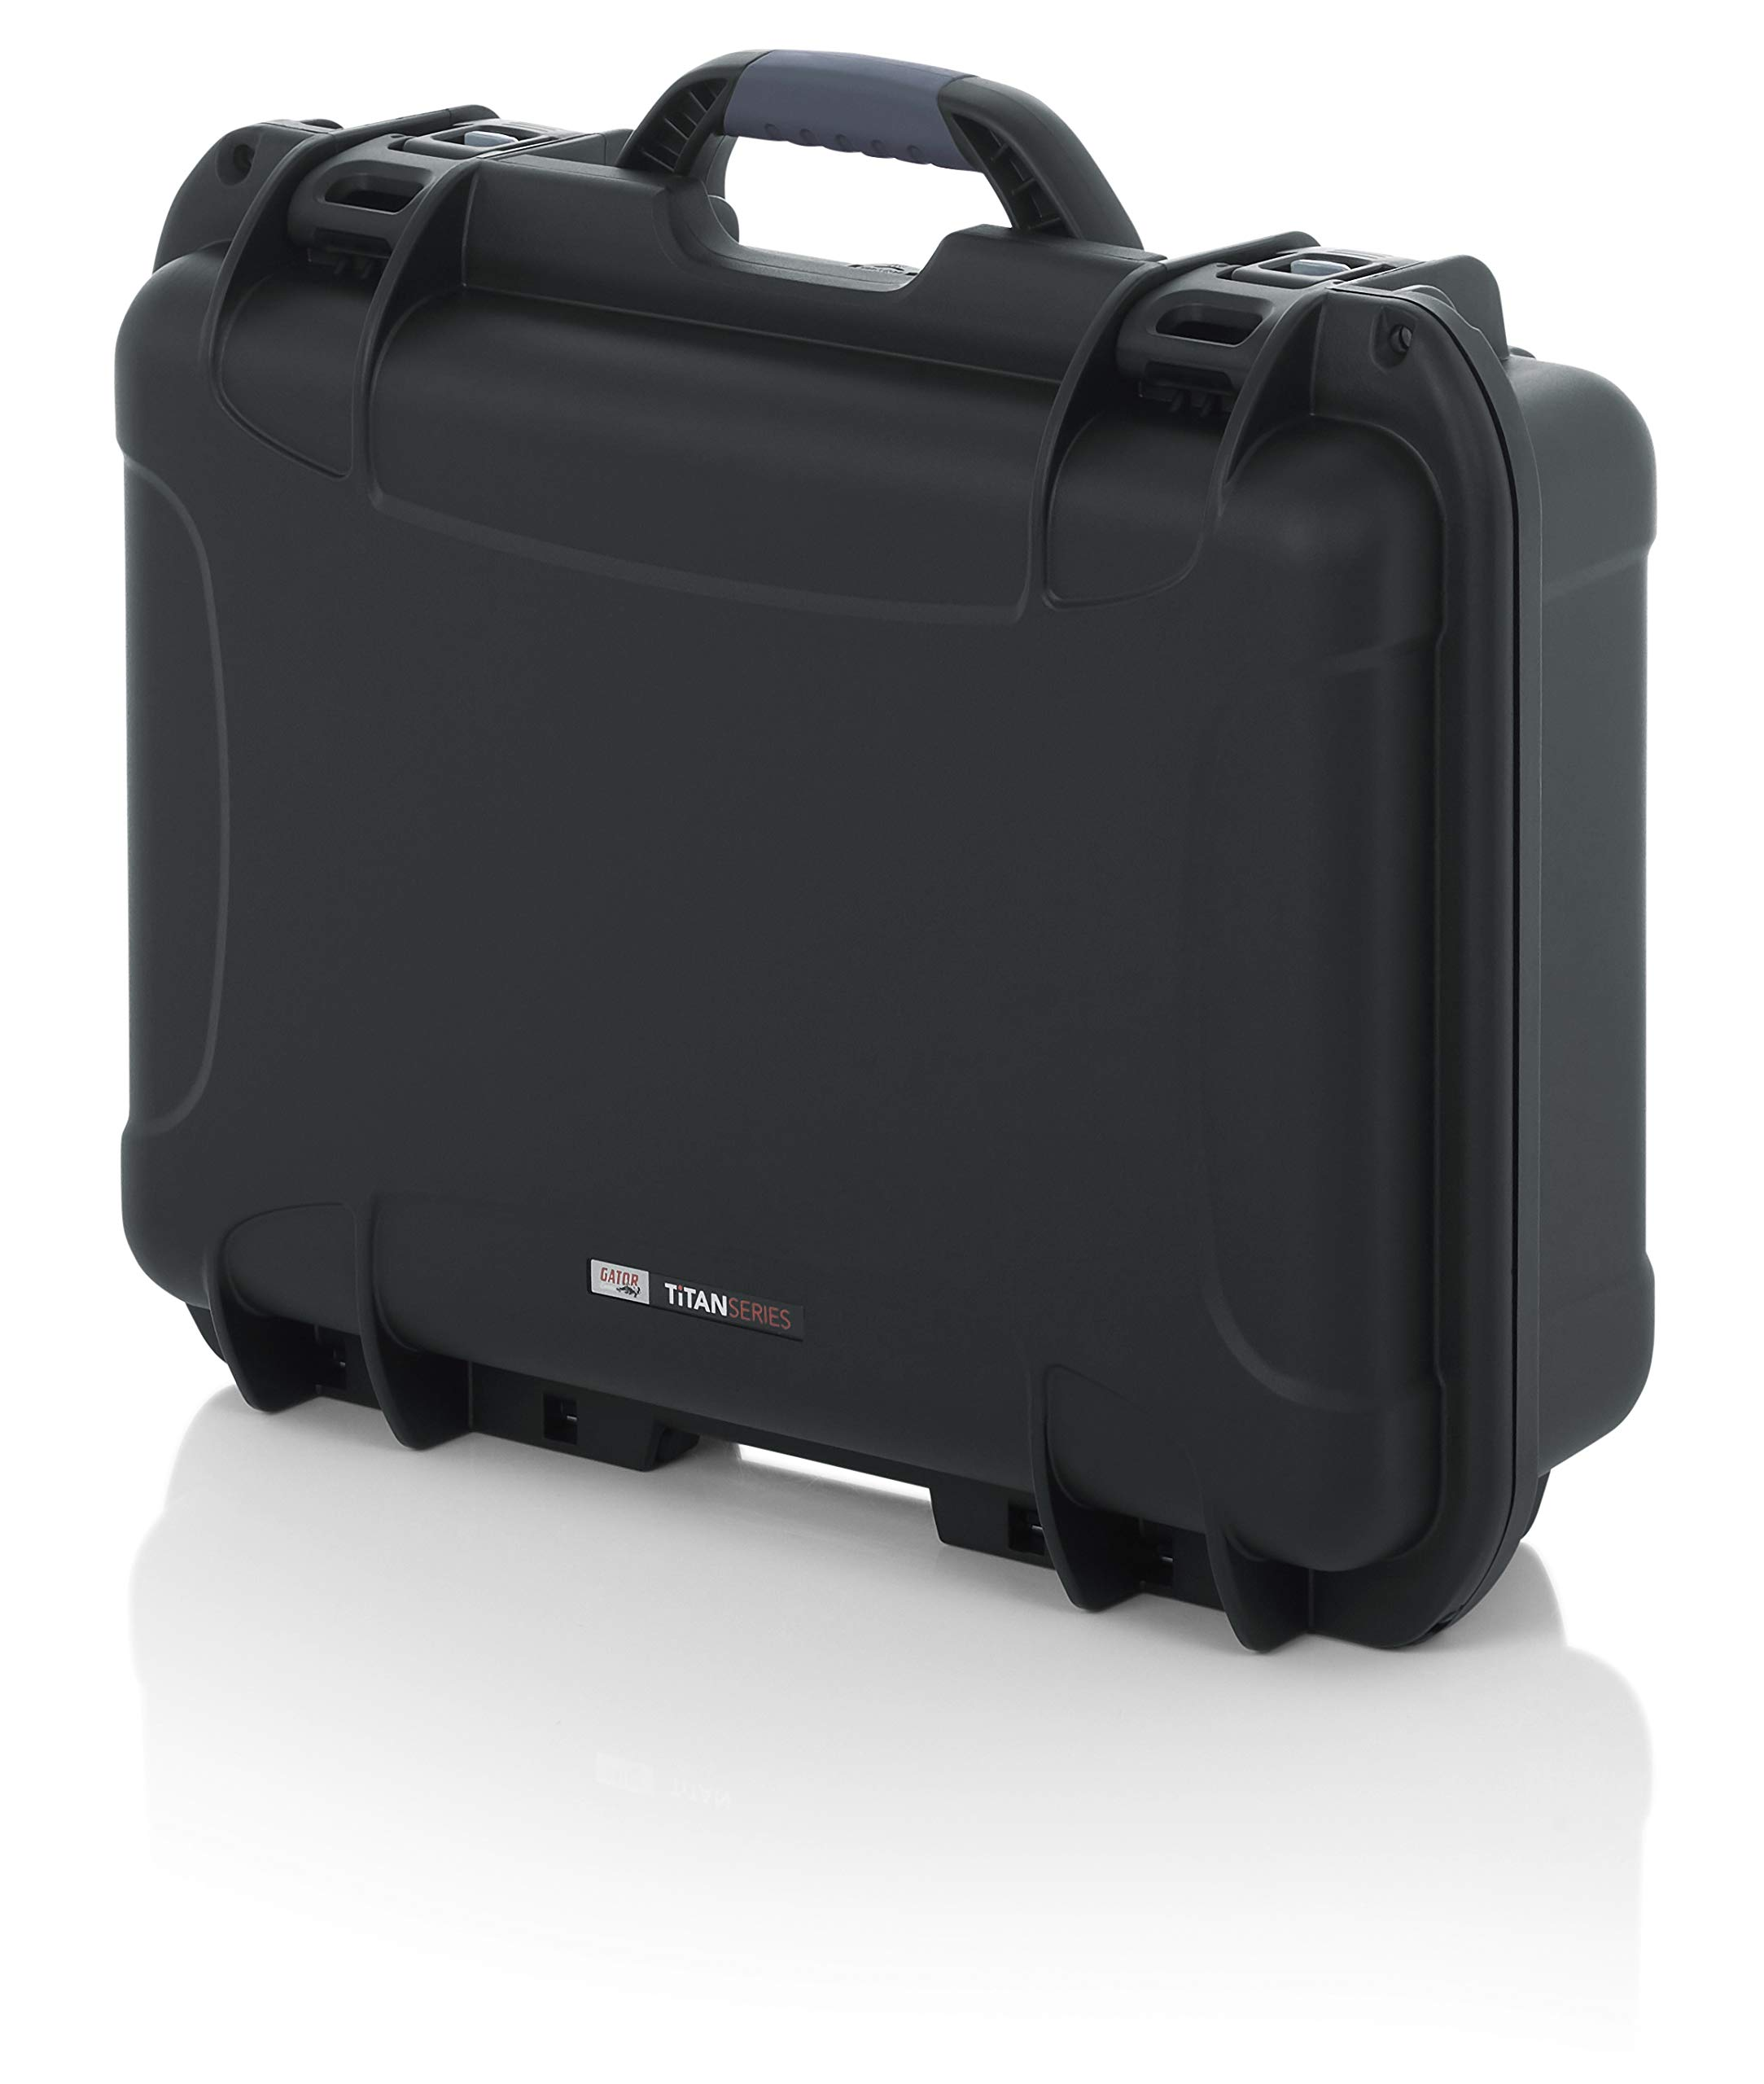 Gator Cases Titan Series Water Proof Case for Wireless Mic Systems; Fits Large Sennheiser Systems (GU-MIC-SENNEW-2)